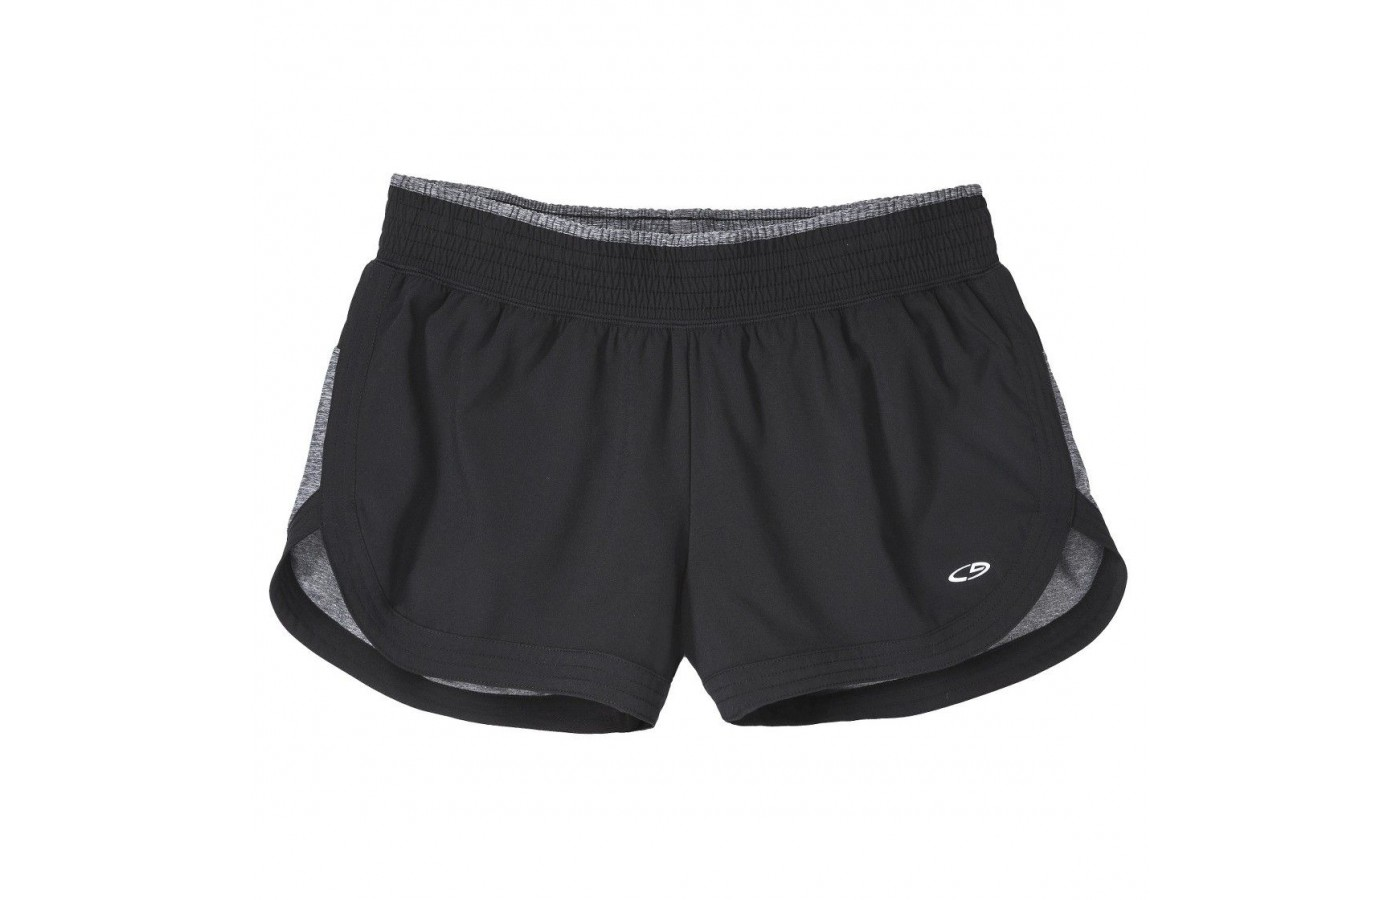 A black pair of the Champion C9 running short.